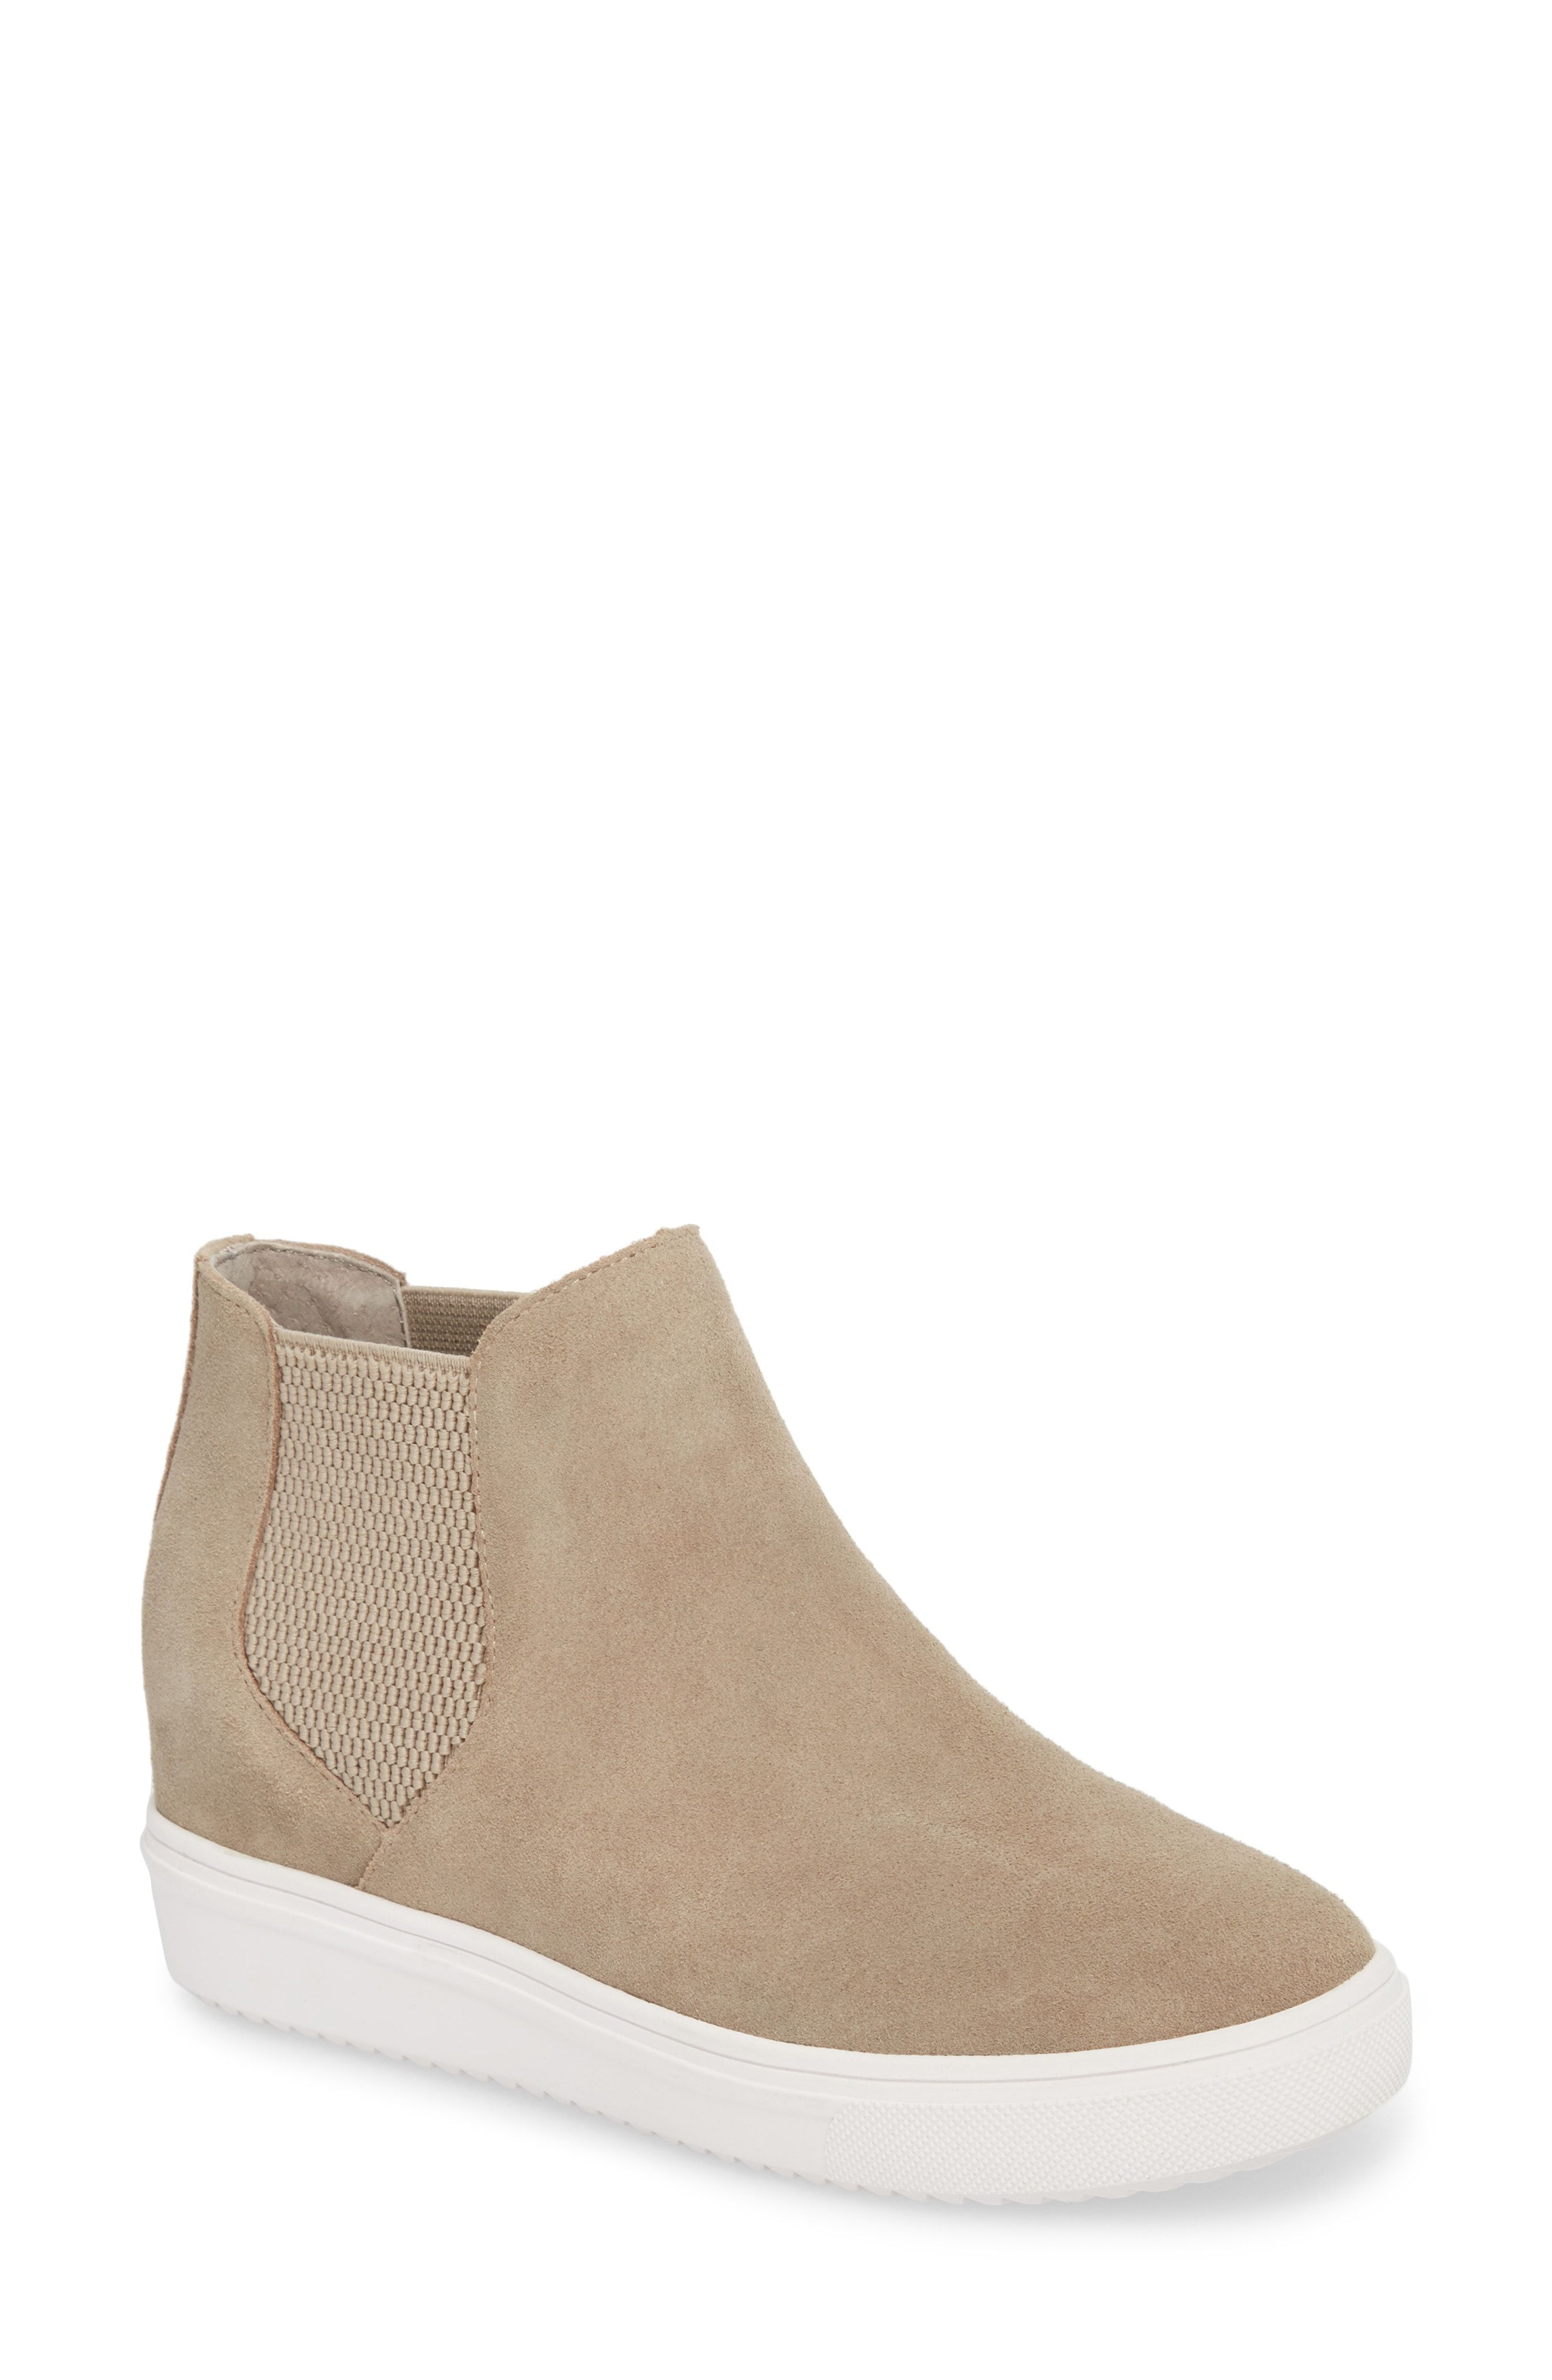 ee50a180ff2 Size 8 Steve Madden Sultan Chelsea Wedge Sneaker available at  Nordstrom